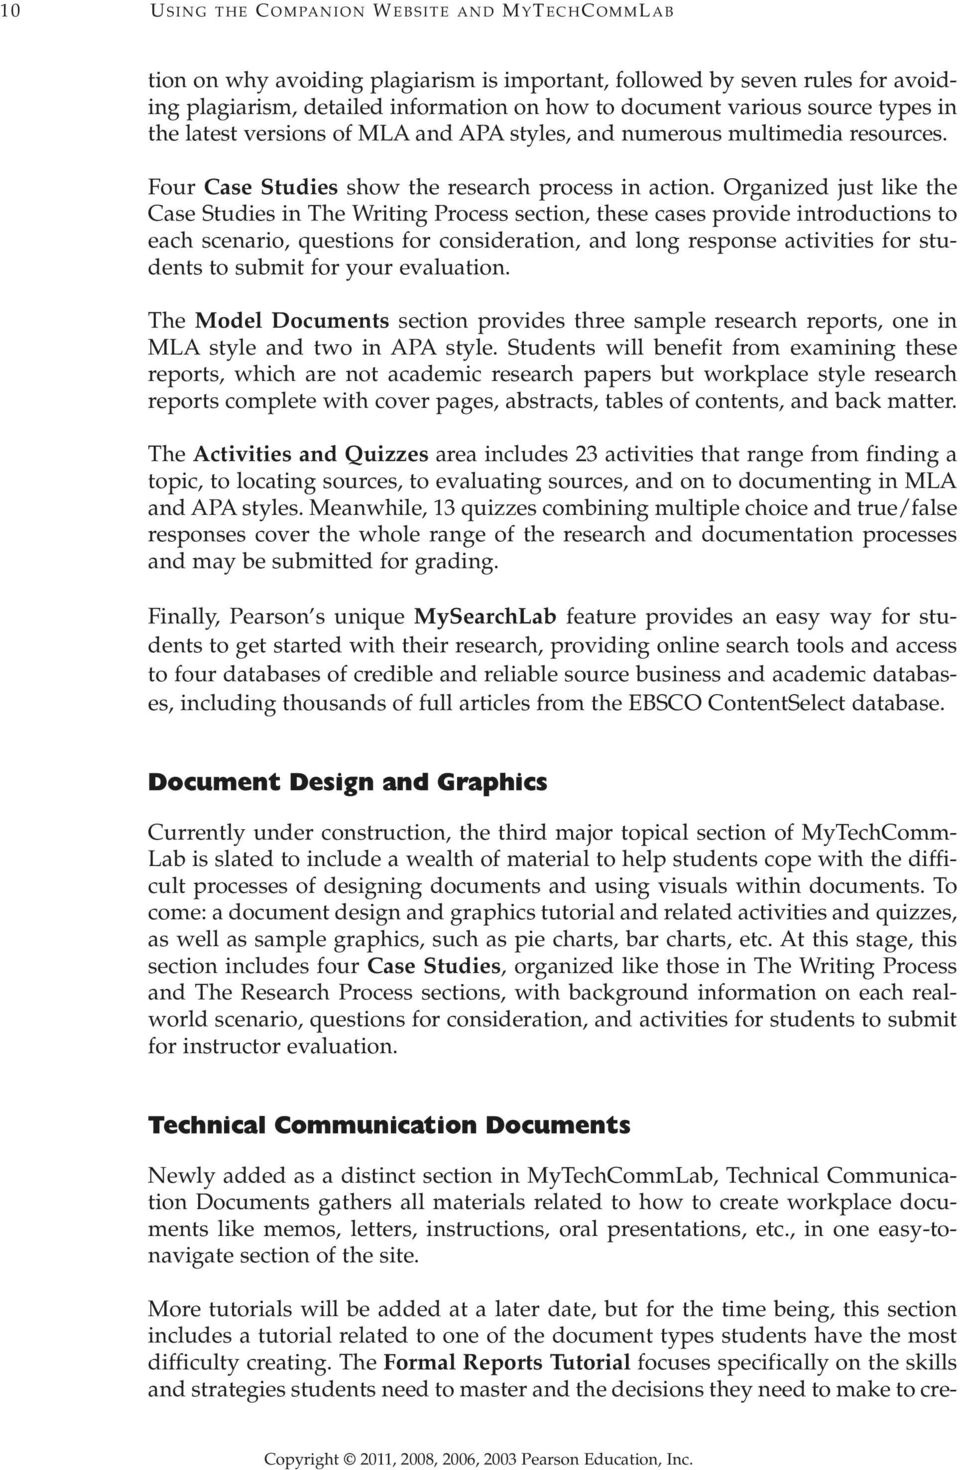 013 Research Paper Page 18 Interesting Topics Fearsome Biology Cell For Evolutionary High School Full